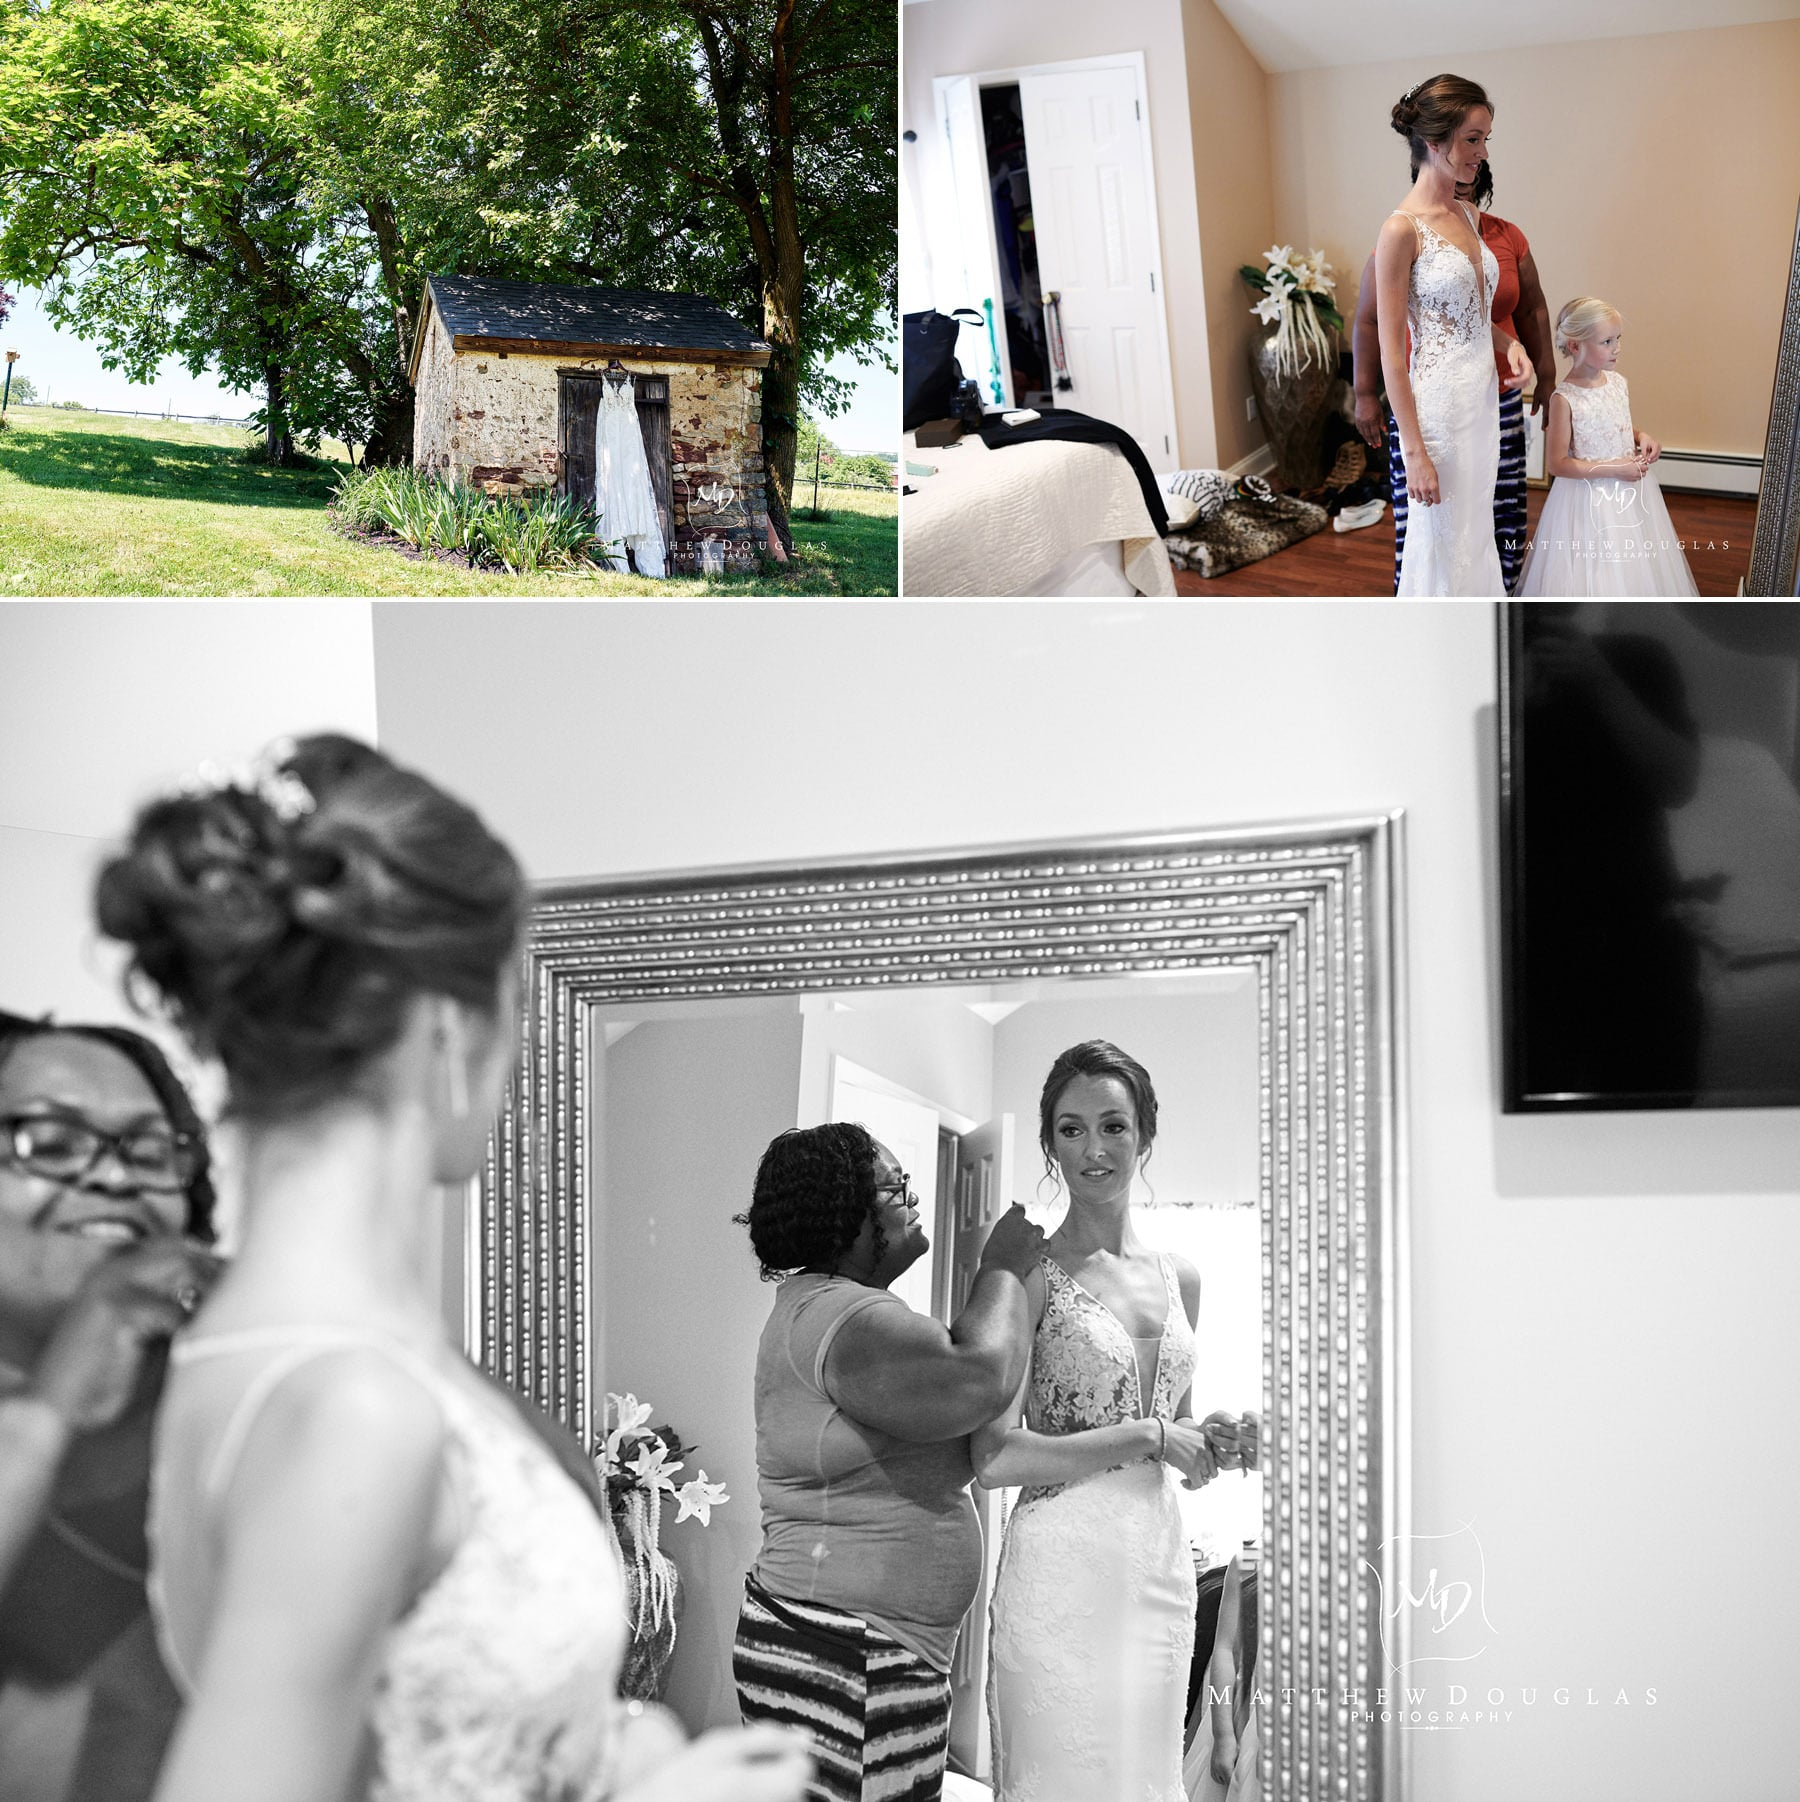 bride getting dressed at home photo